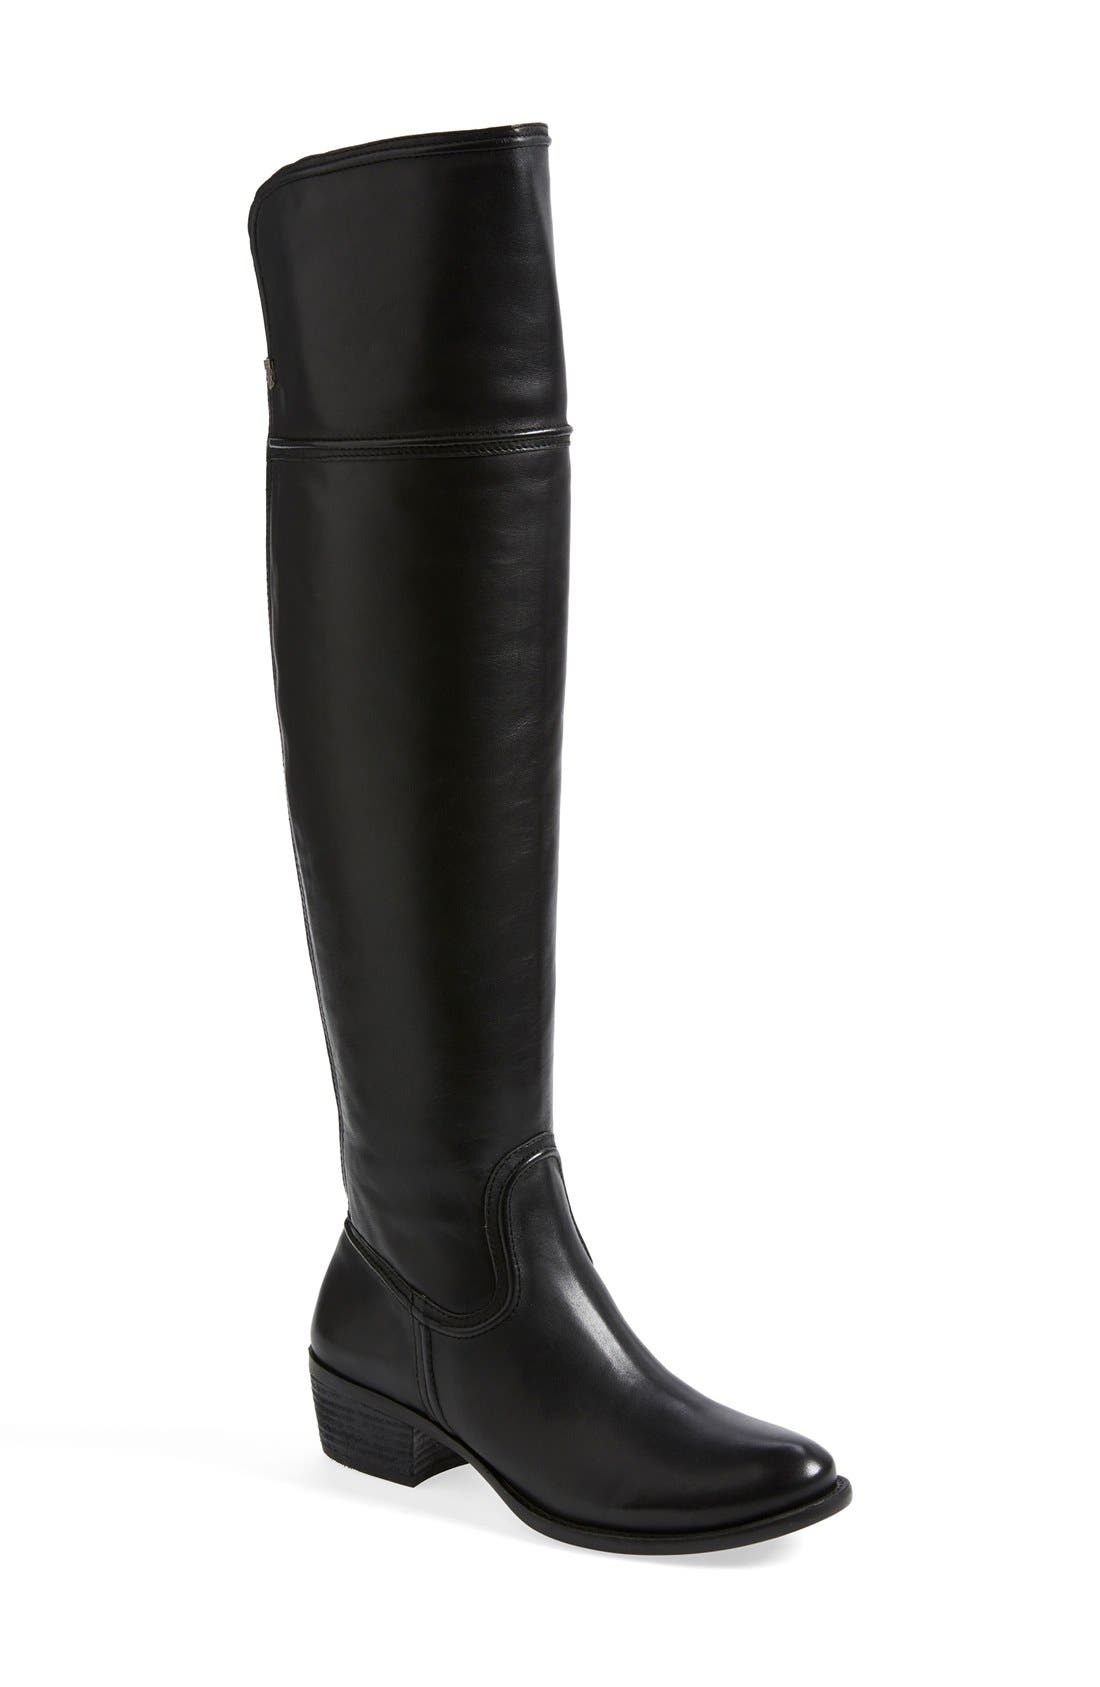 Main Image - Vince Camuto 'Baldwin' Over the Knee Leather Boot (Wide Calf) (Nordstrom Exclusive) (Women)